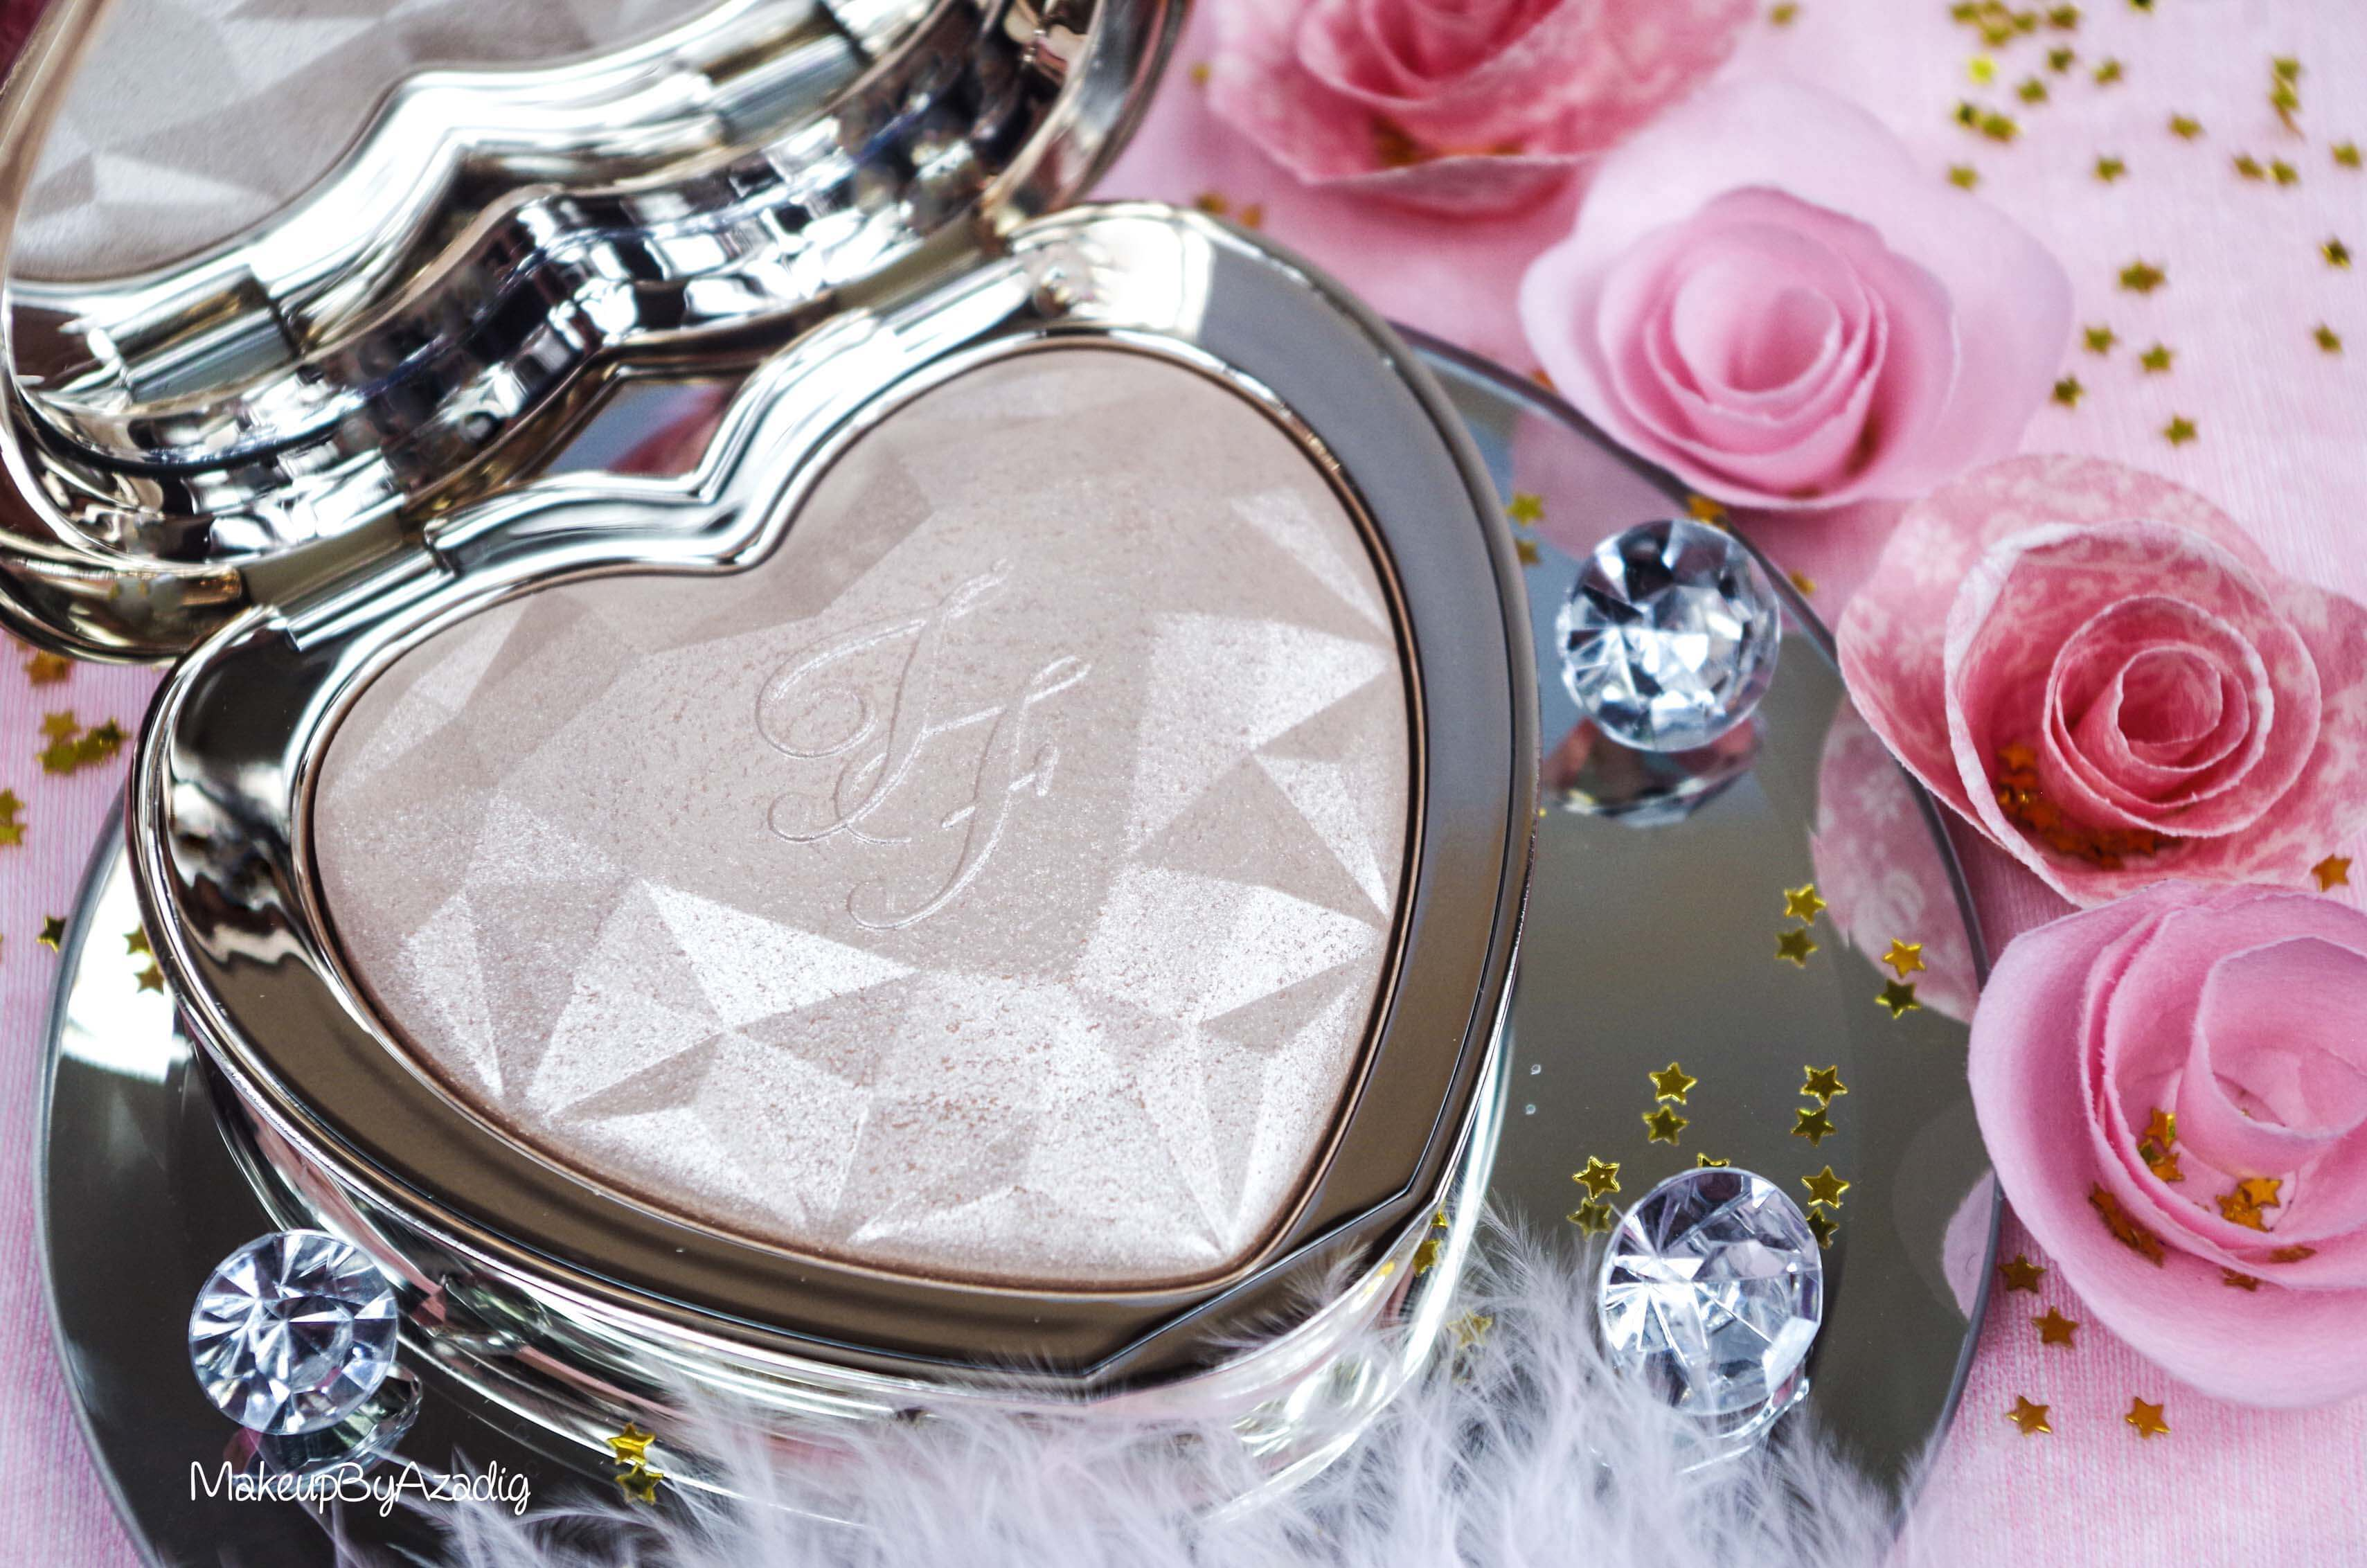 revue-review-highlighter-love-light-too-faced-coeur-avis-prix-sephora-makeupbyazadig-champagne